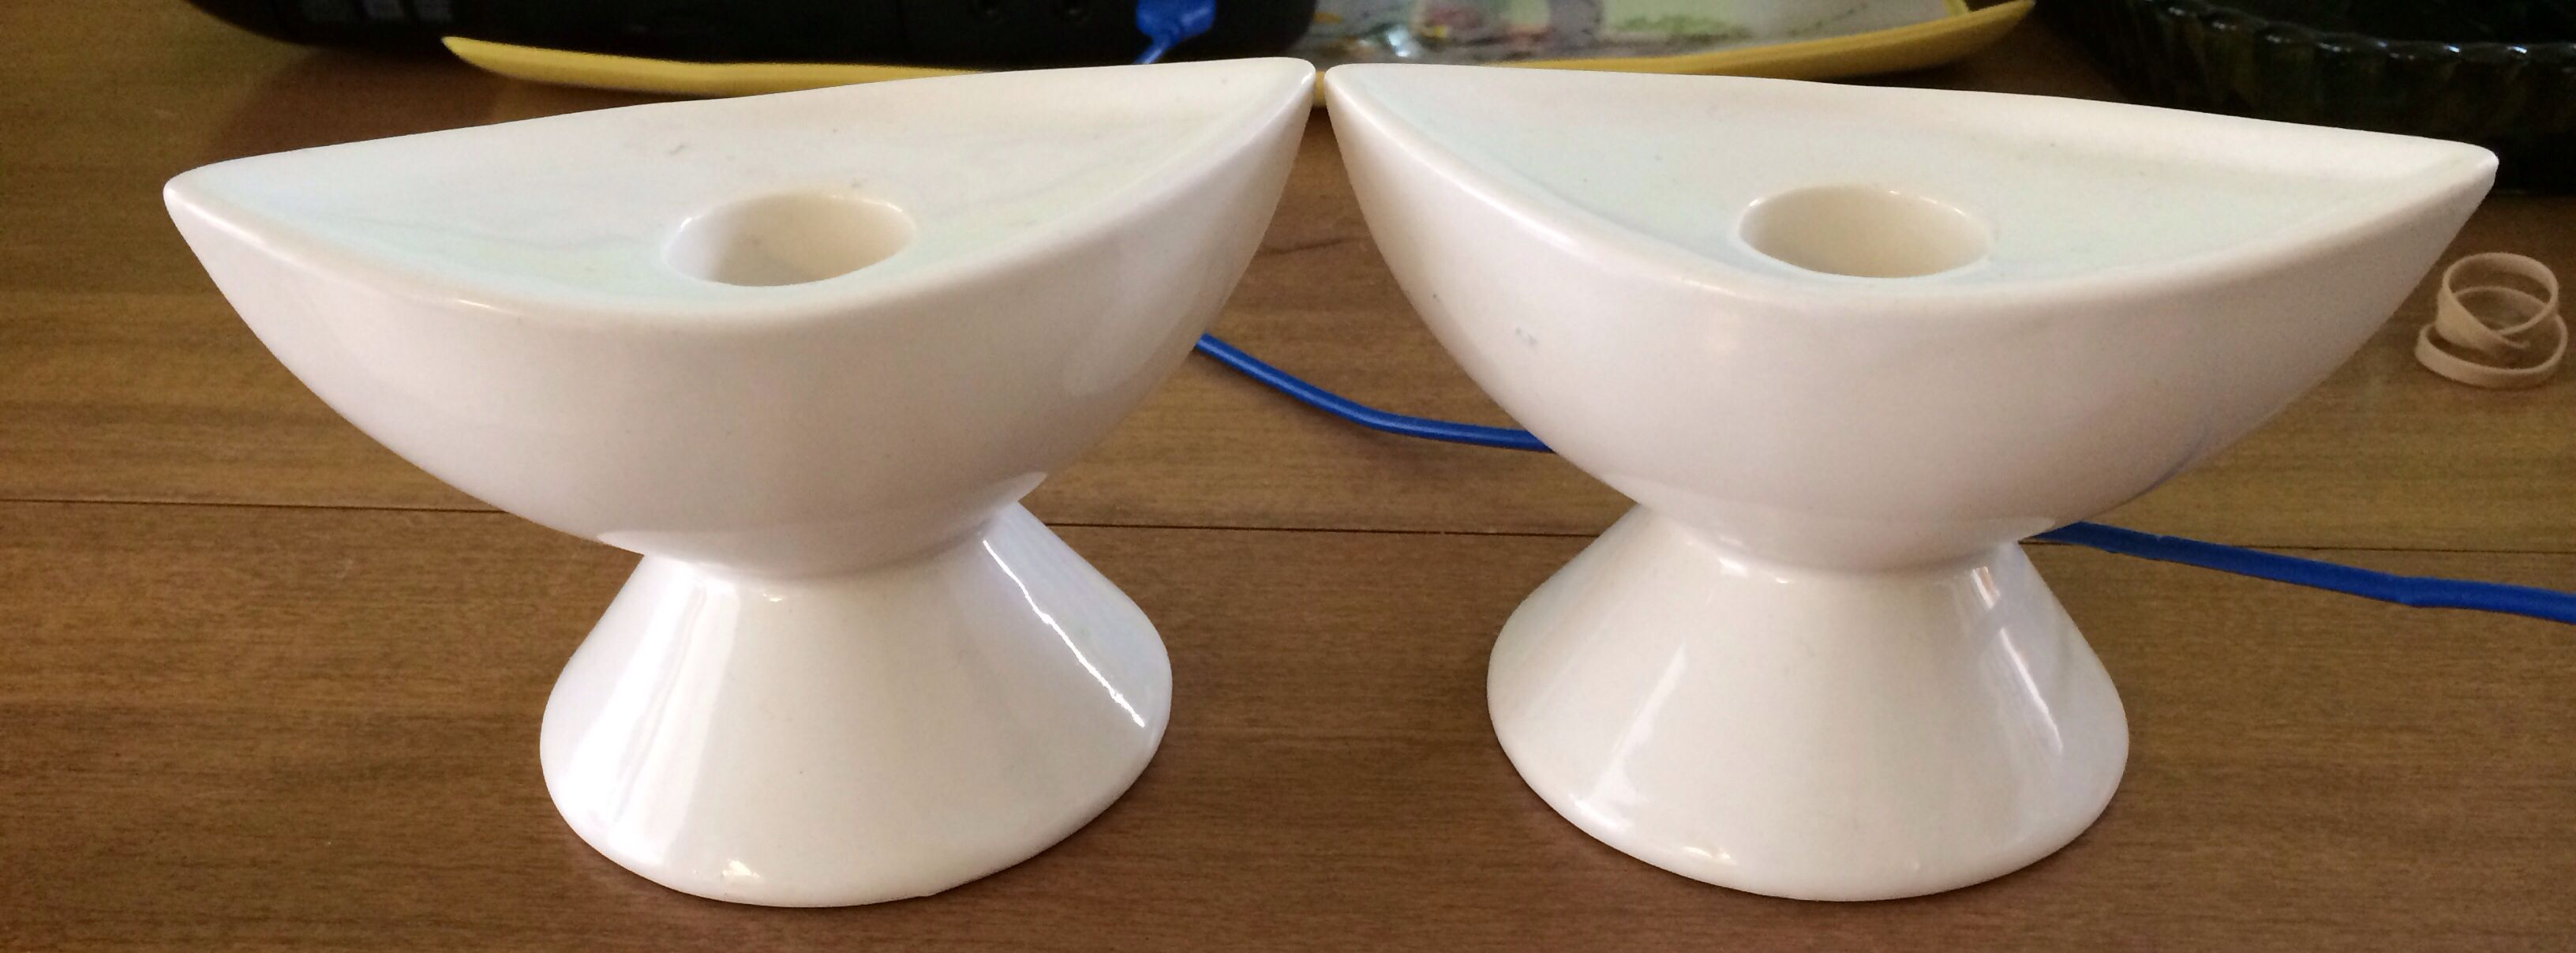 "These mid century modern candle holders are white in a simple canoe shape. They are 4 1/2"" x 2 1/4"" and 3"" tall. They are in great shape, with no chips or cracks, and only some scuffing on the bases. They are faintly marked ""USA 42.""  We estimate the cost of shipping from coast to coast, and all shipping includes delivery confirmation. We will refund any difference greater than $1 between the shipping charges paid and the actual cost of shipping."